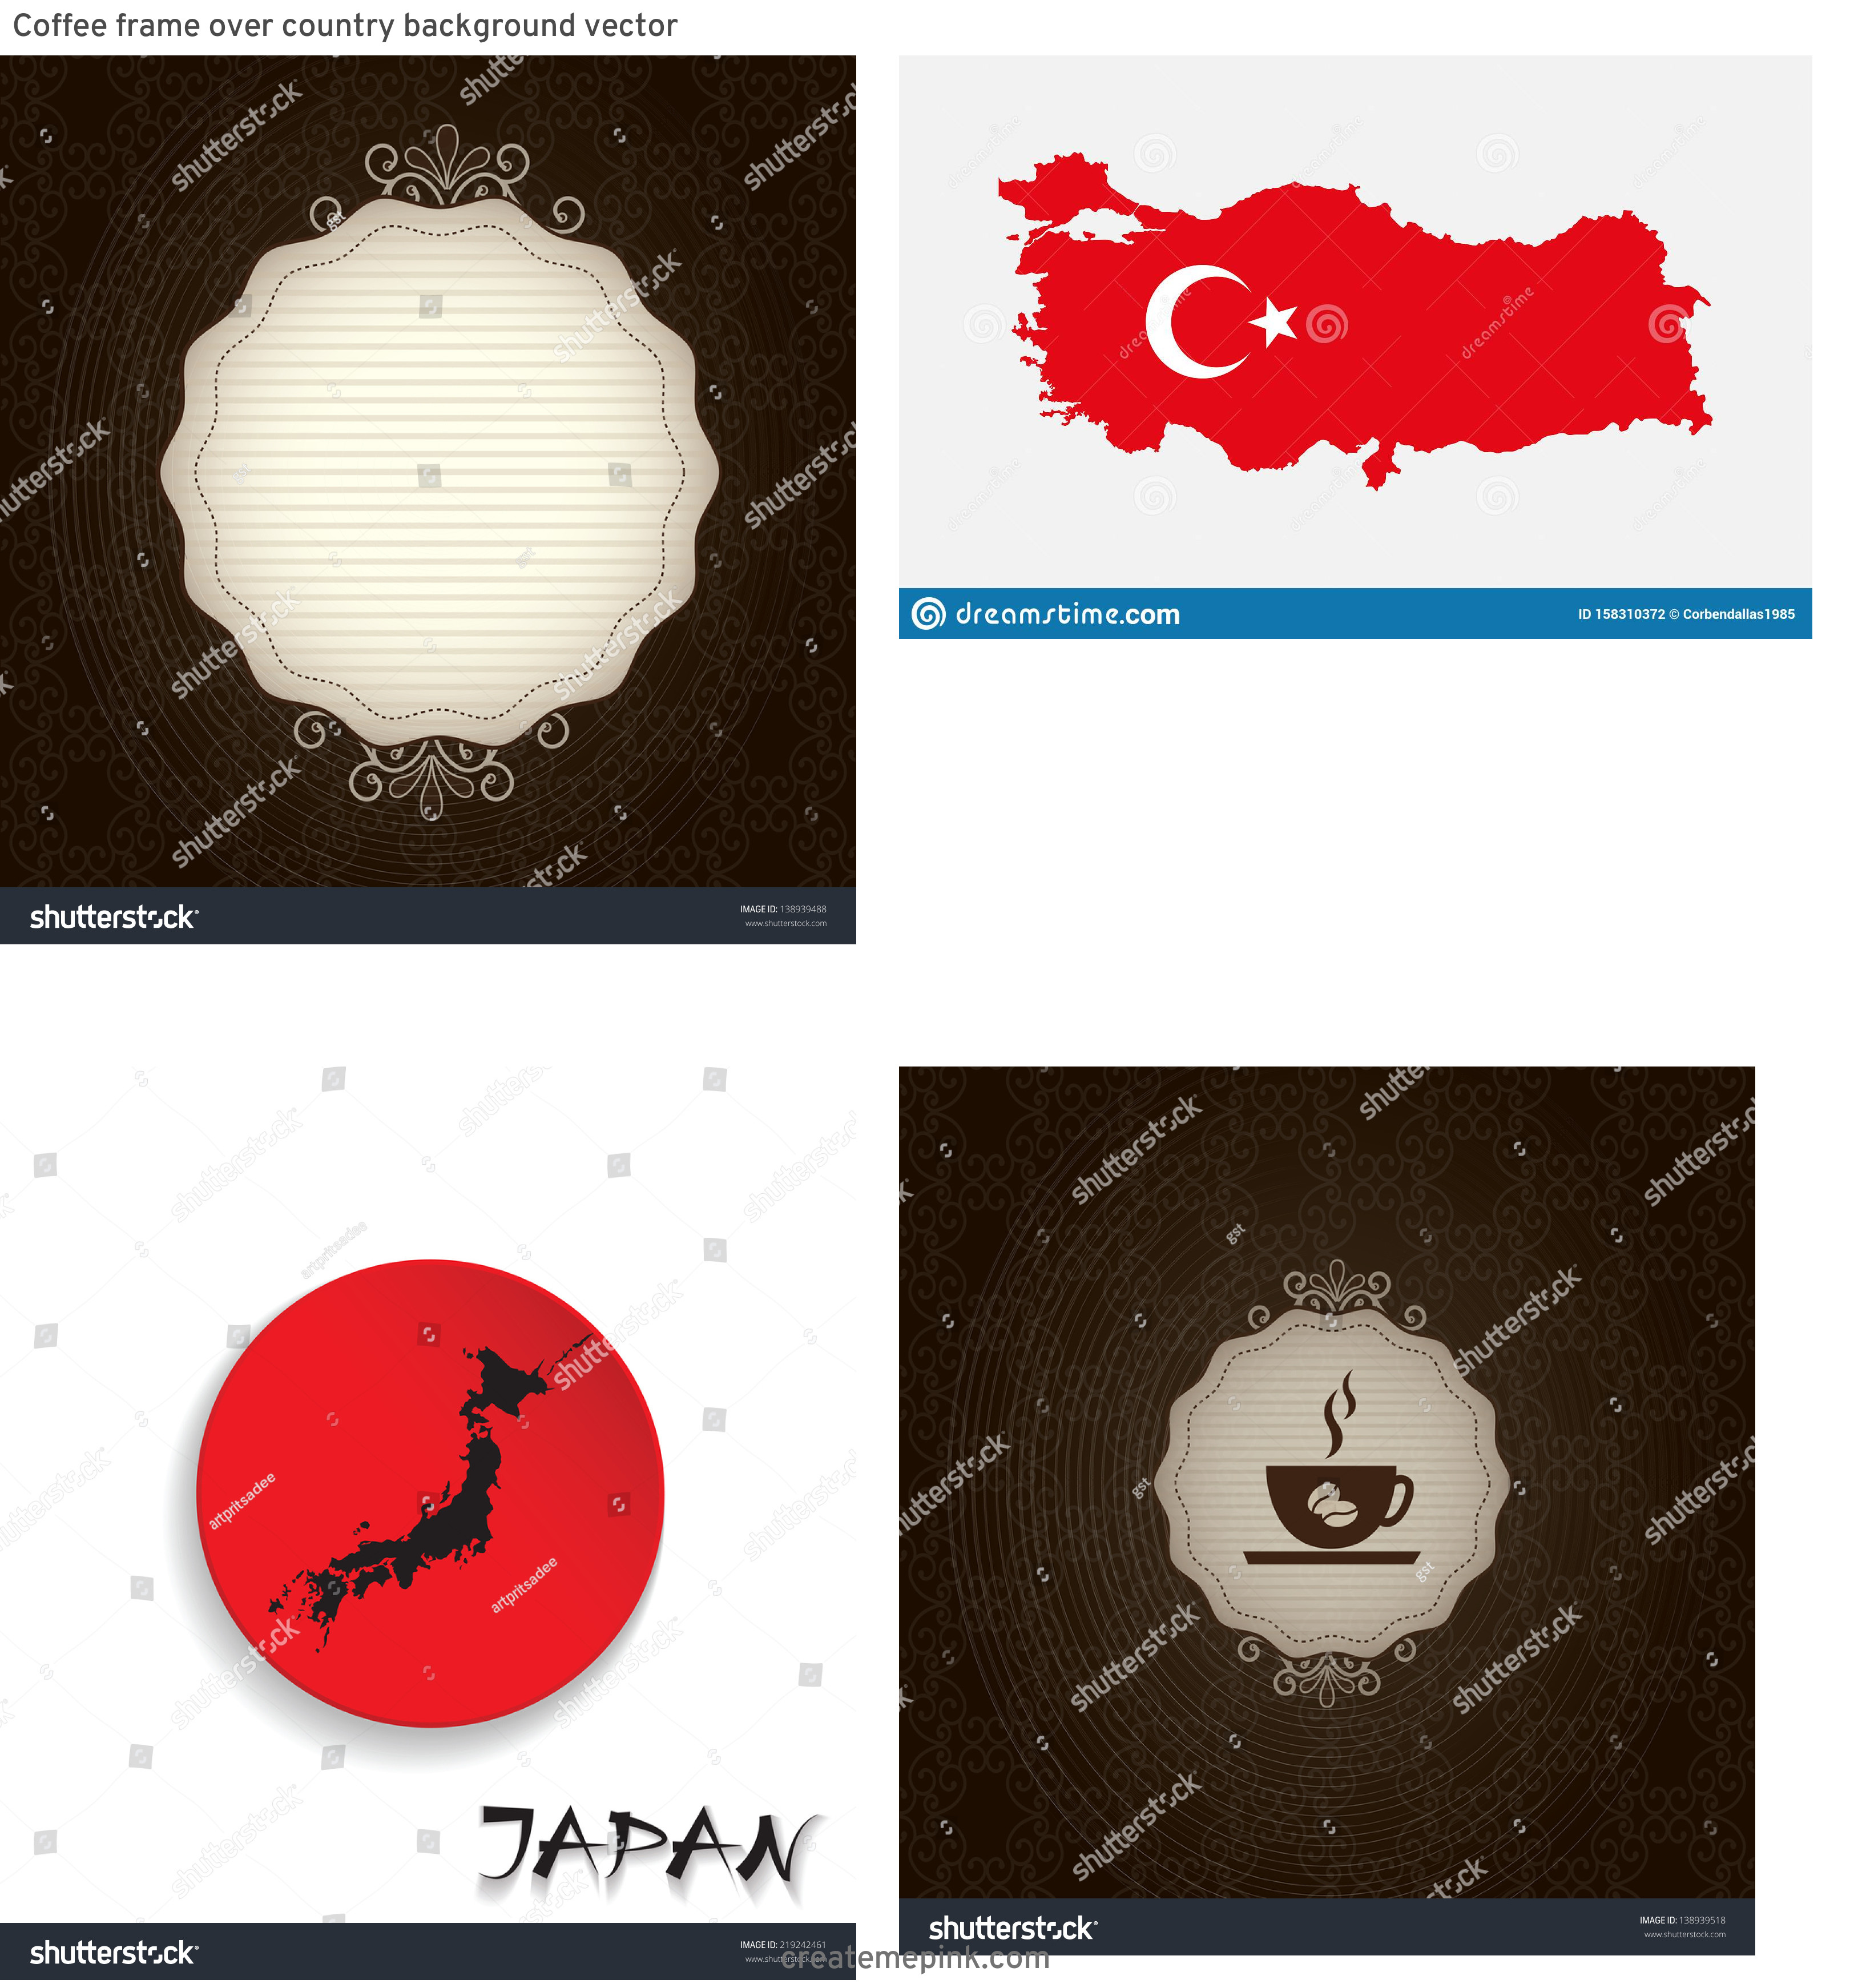 Country Background Vector: Coffee Frame Over Country Background Vector